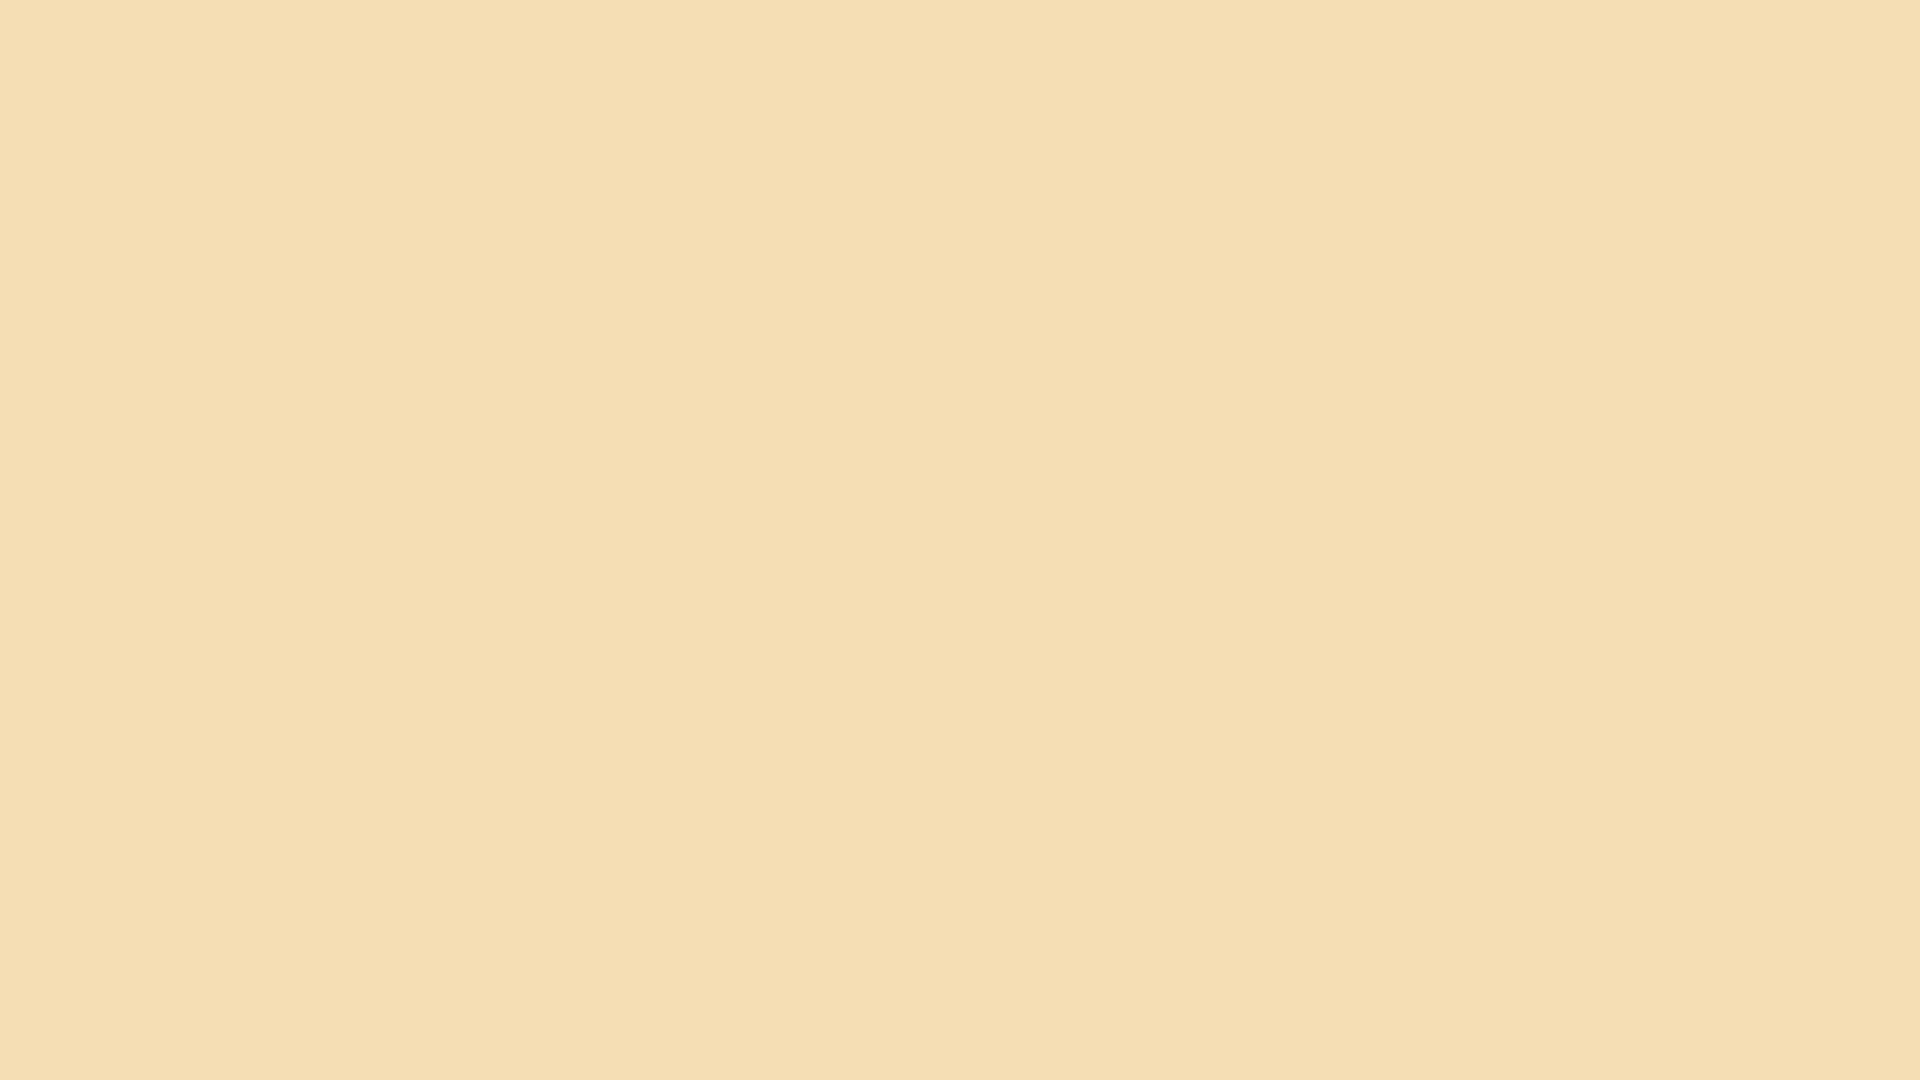 1920x1080 Wheat Solid Color Background